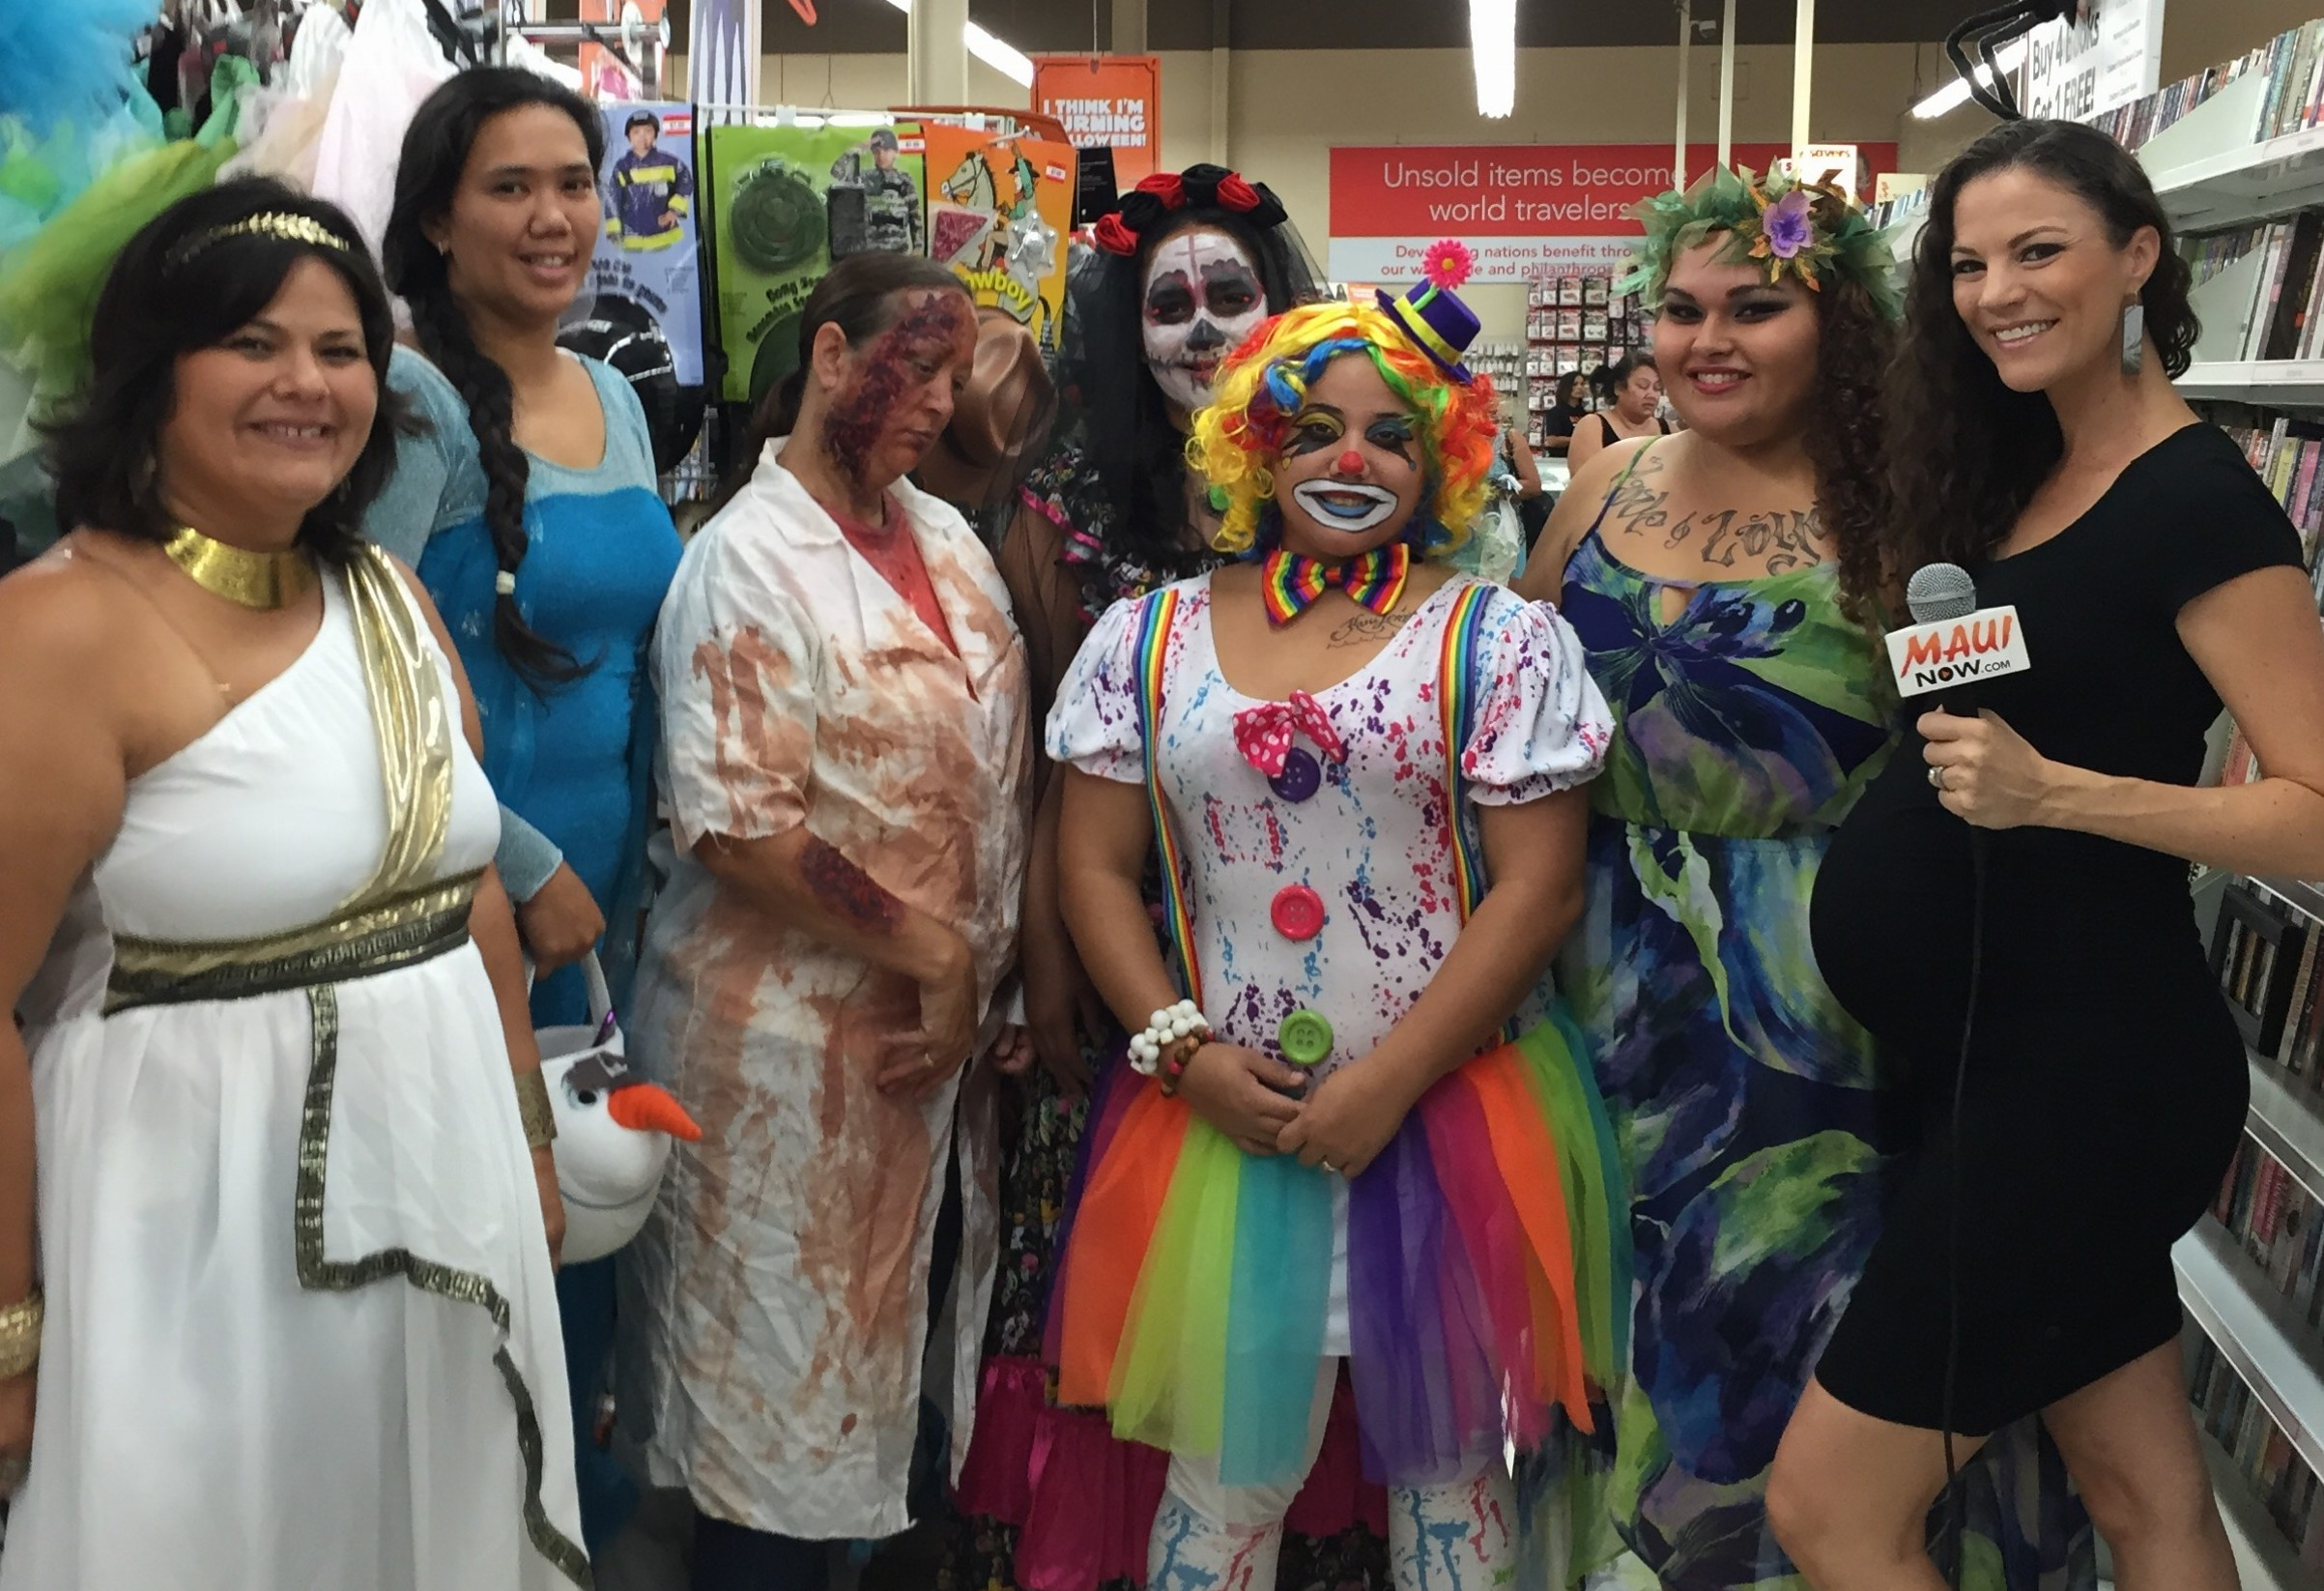 maui nows malika dudley checks out savers for halloween costume ideas